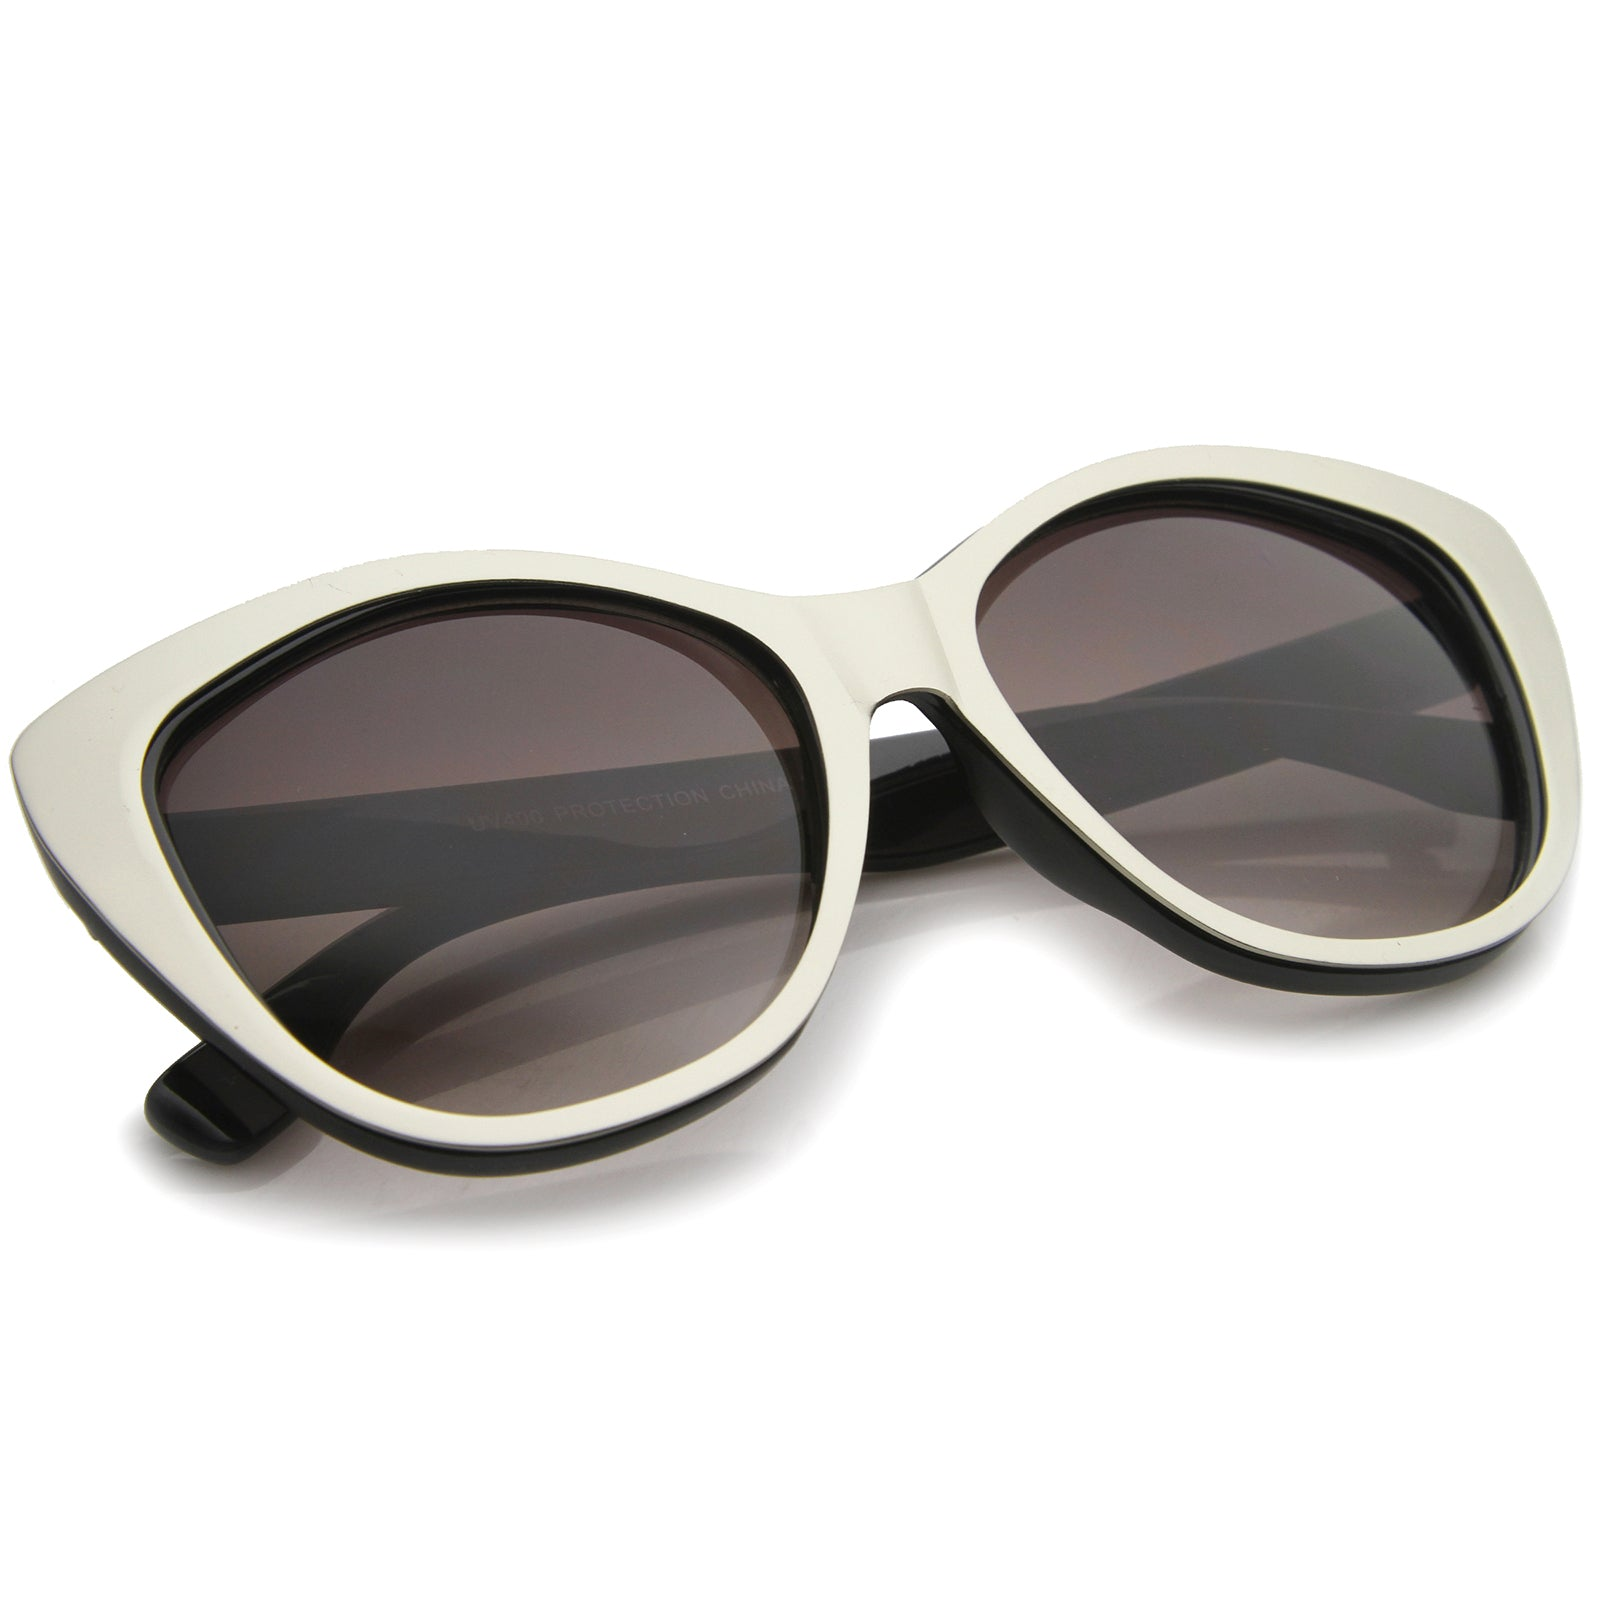 Women's High Fashion Two-Toned Tinted Lens Oversize Cat Eye Sunglasses 55mm - sunglass.la - 8